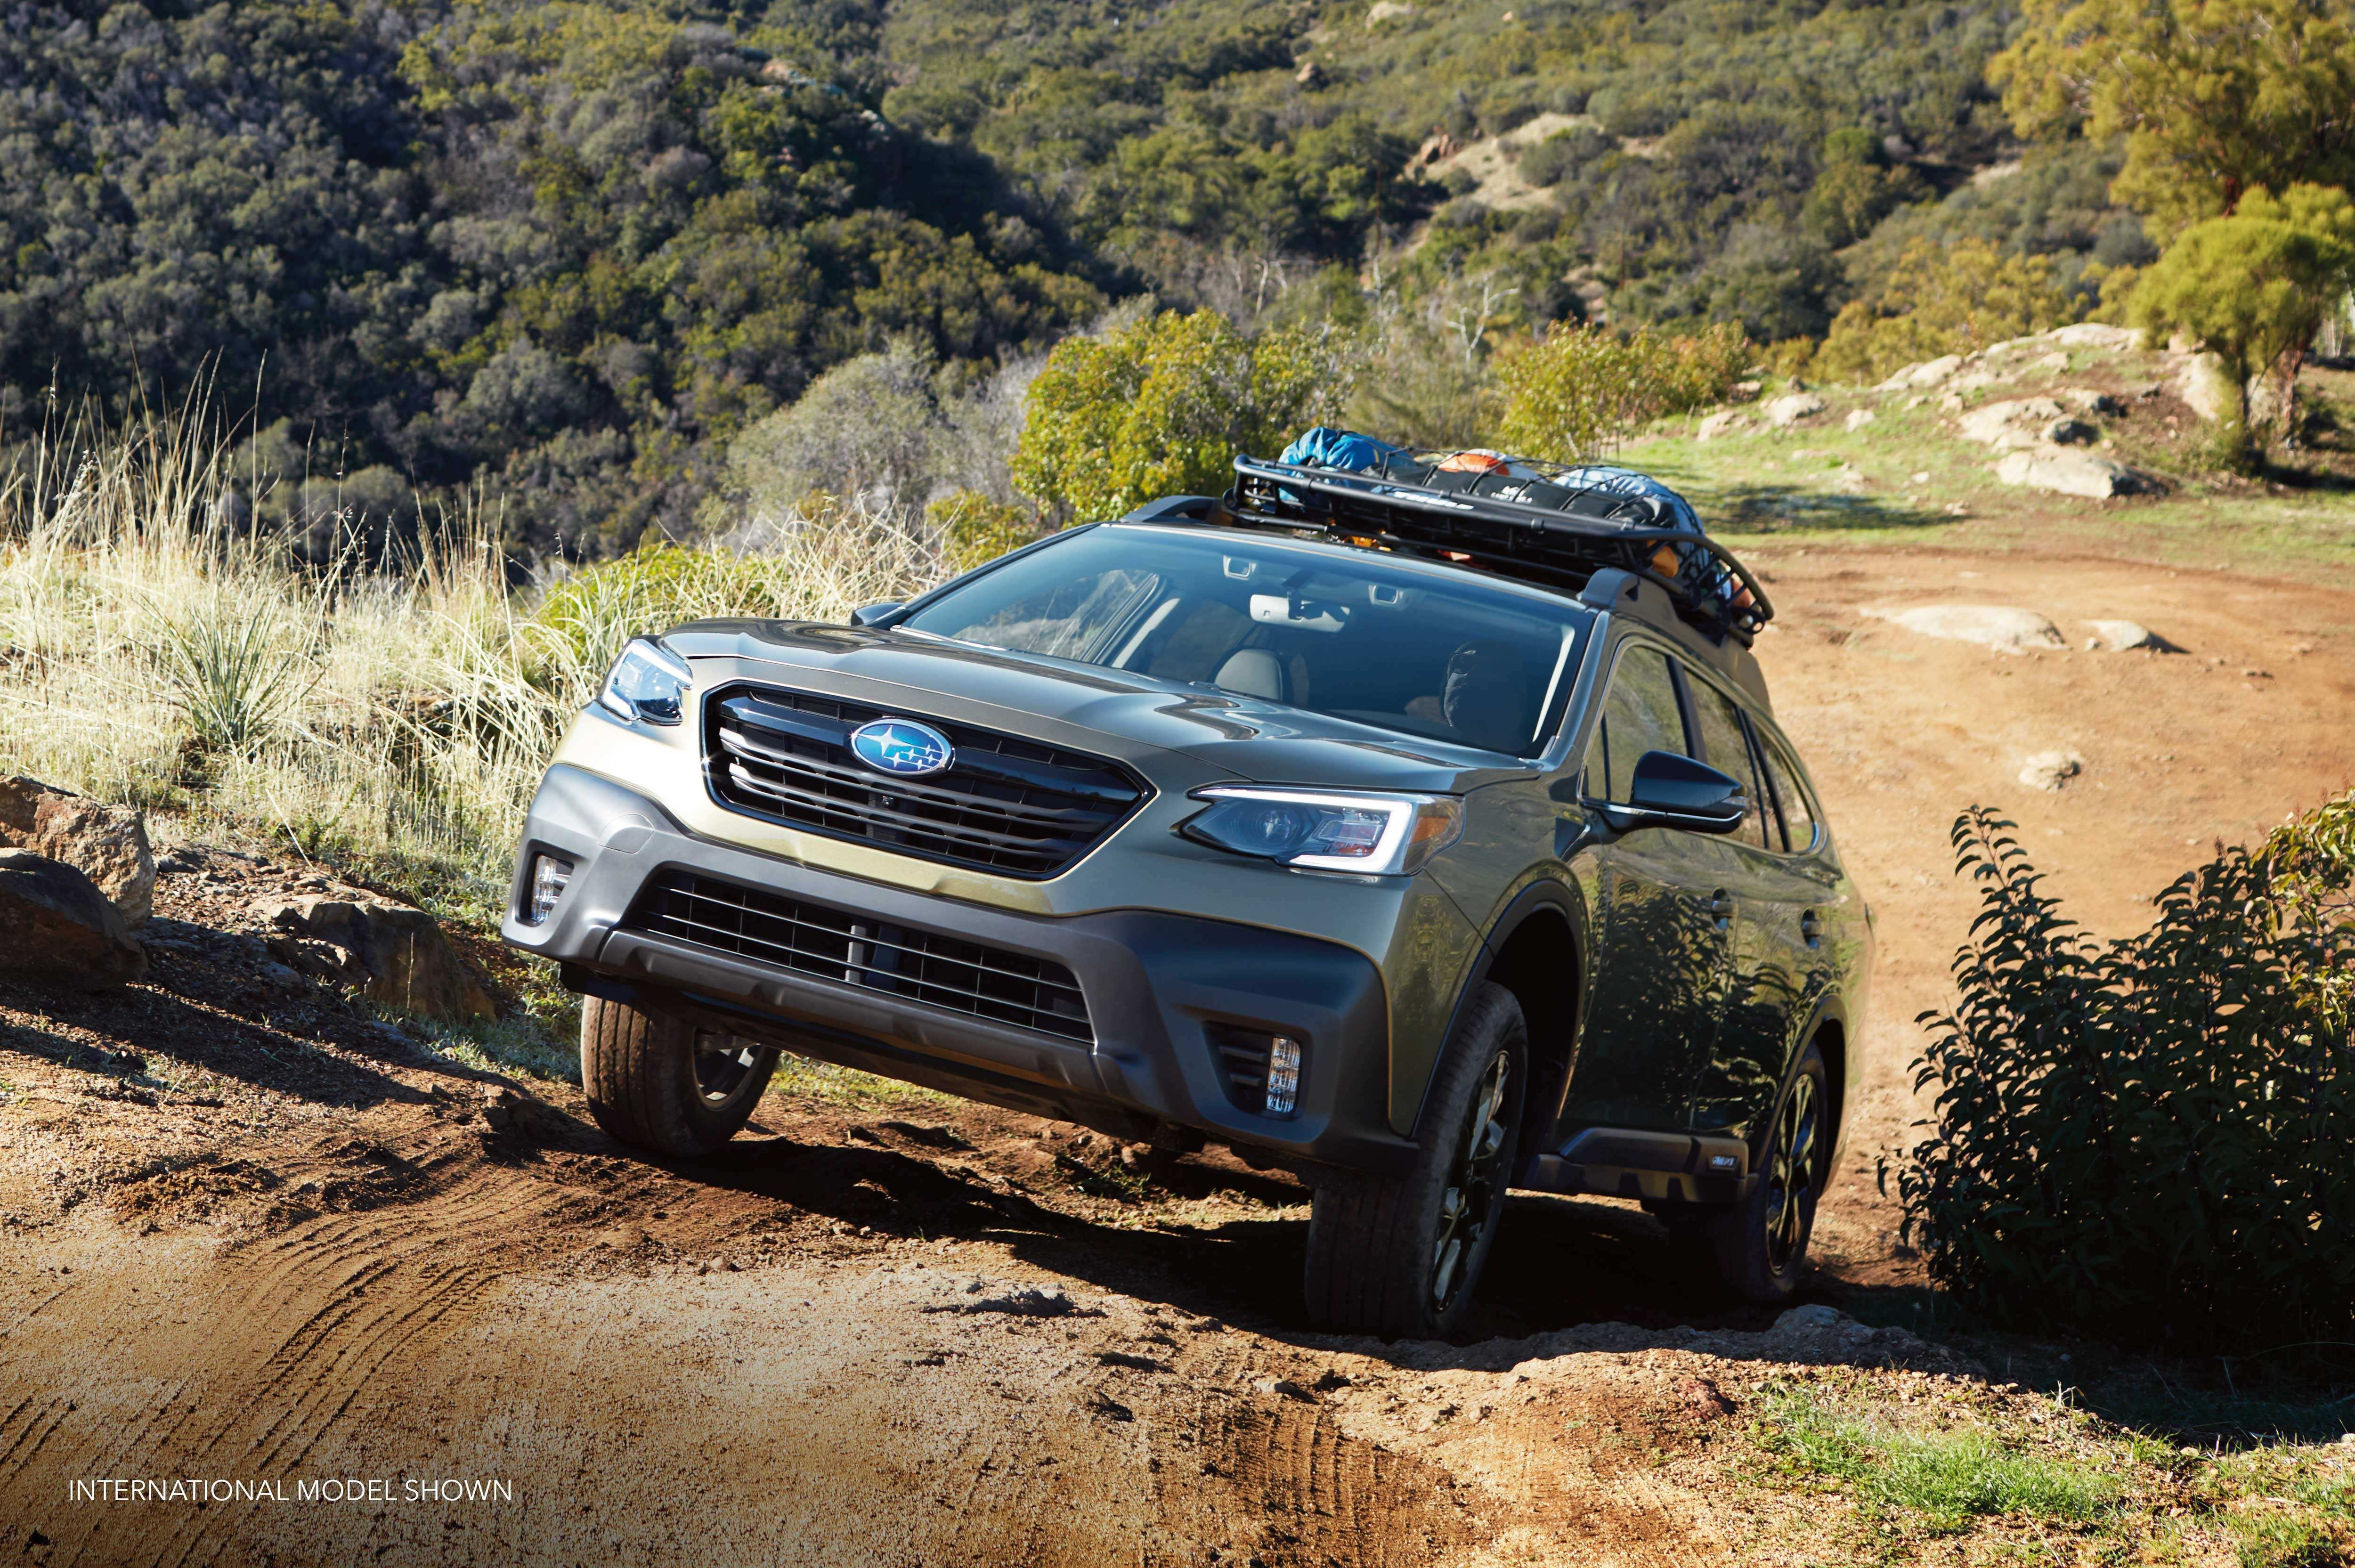 69 New When Will 2020 Subaru Outback Be Available Photos with When Will 2020 Subaru Outback Be Available